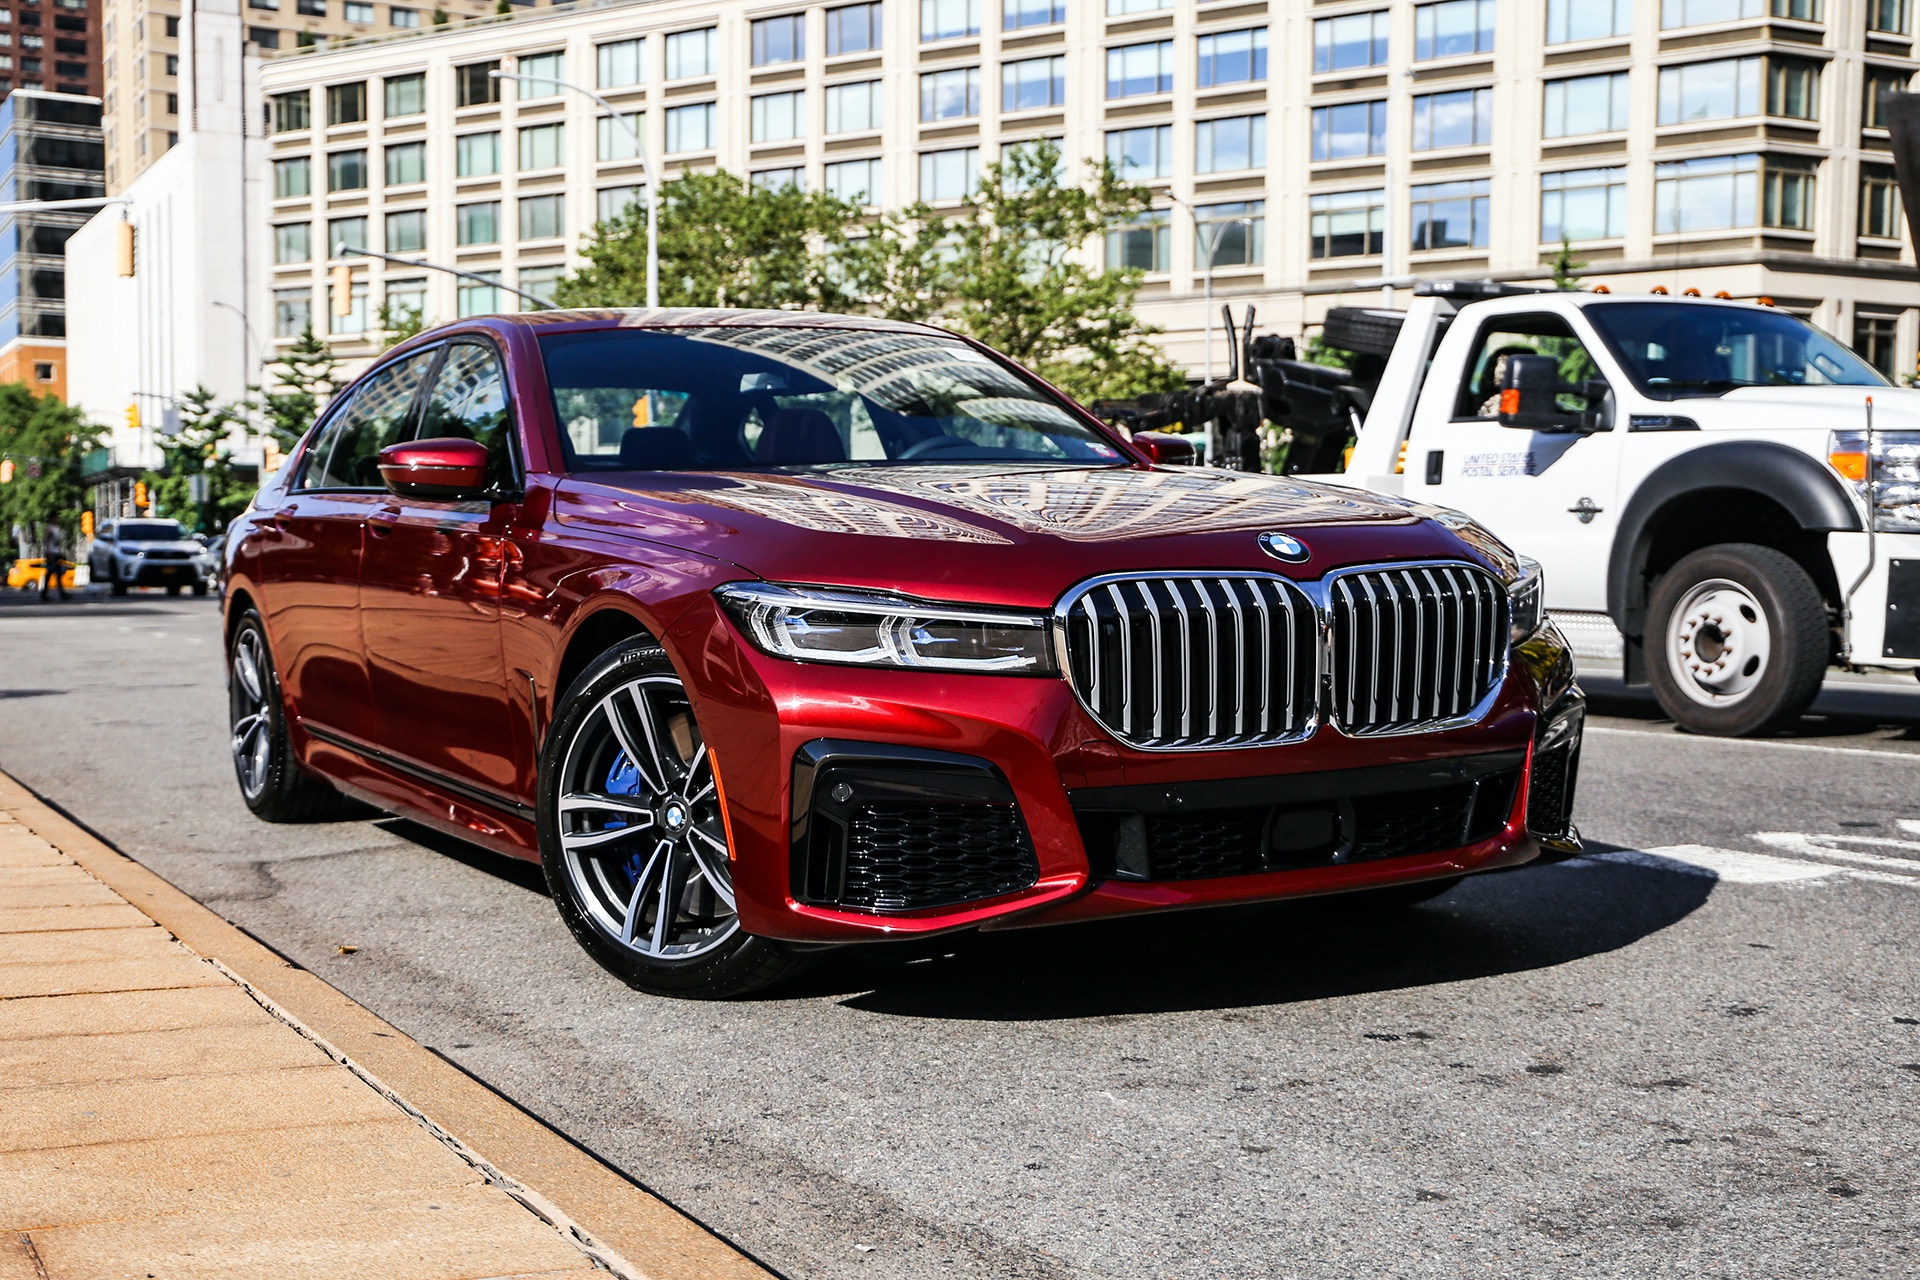 The New Bmw 750i Facelift Shines In The Beautiful Aventurine Red Color